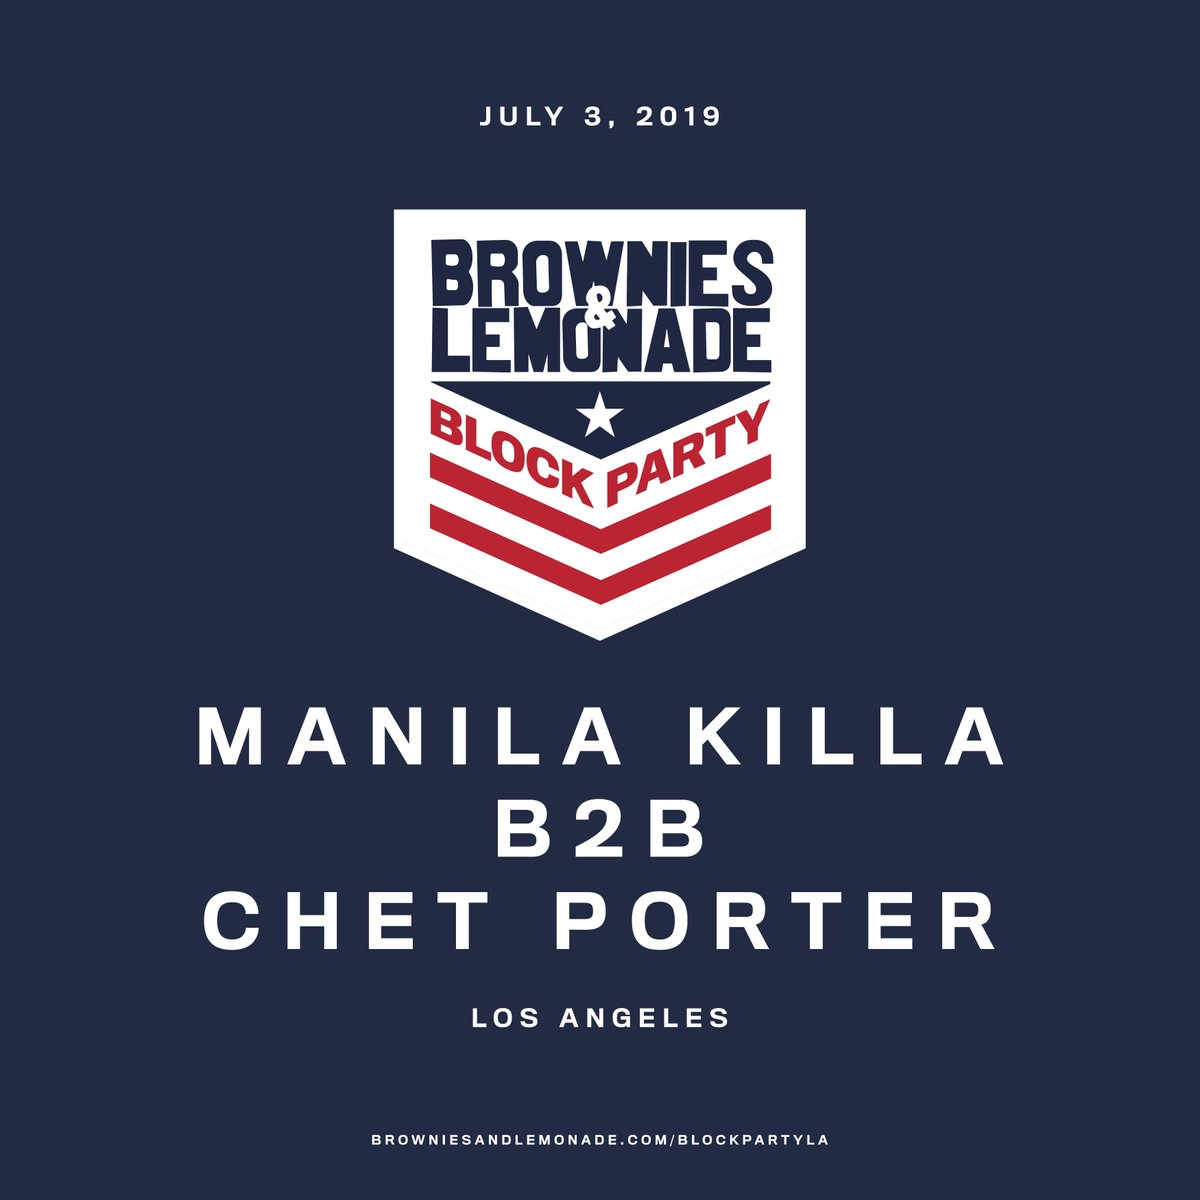 We brought Manila Killa &amp; Moving Castle out for their 1st LA show in 2014, and also met Chet Porter through them. Since then they both have become uplifting, inspiring artists + close friends of ours.  Now they are coming together to do a rare B2B at the B&amp;L Block Party in LA   <br>http://pic.twitter.com/KuGL4n0BNU